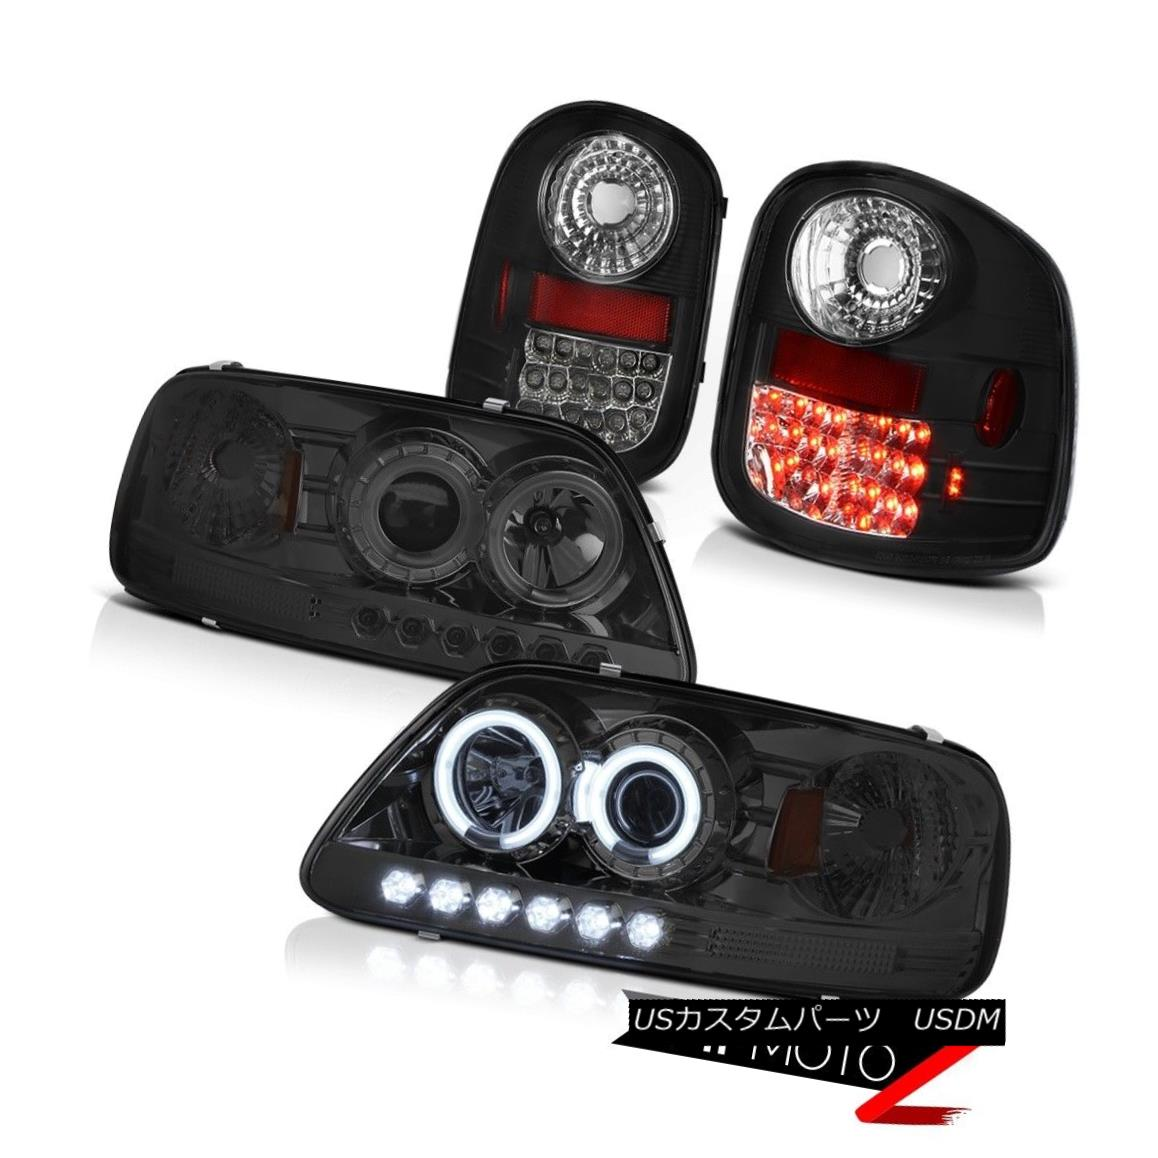 ヘッドライト Devil's Eye CCFL Halo Headlights Bright LED Tail Lights 97-03 F150 Flareside SVT 悪魔の目CCFL HaloヘッドライトブライトLEDテールライト97-03 F150 Flareside SVT